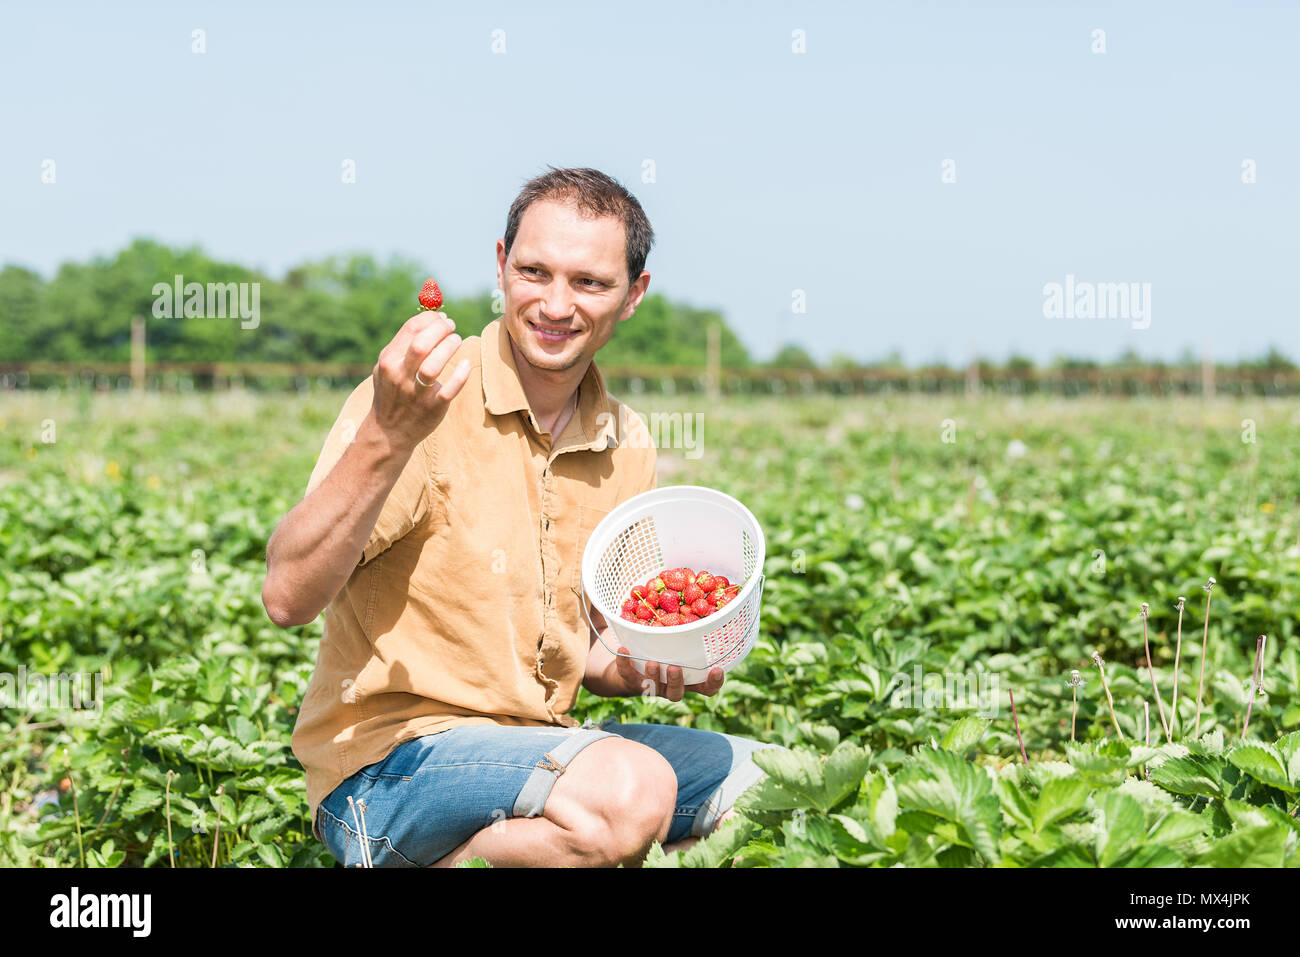 Young happy smiling man picking strawberries in green field rows farm, carrying basket of red berries fruit in spring, summer activity - Stock Image